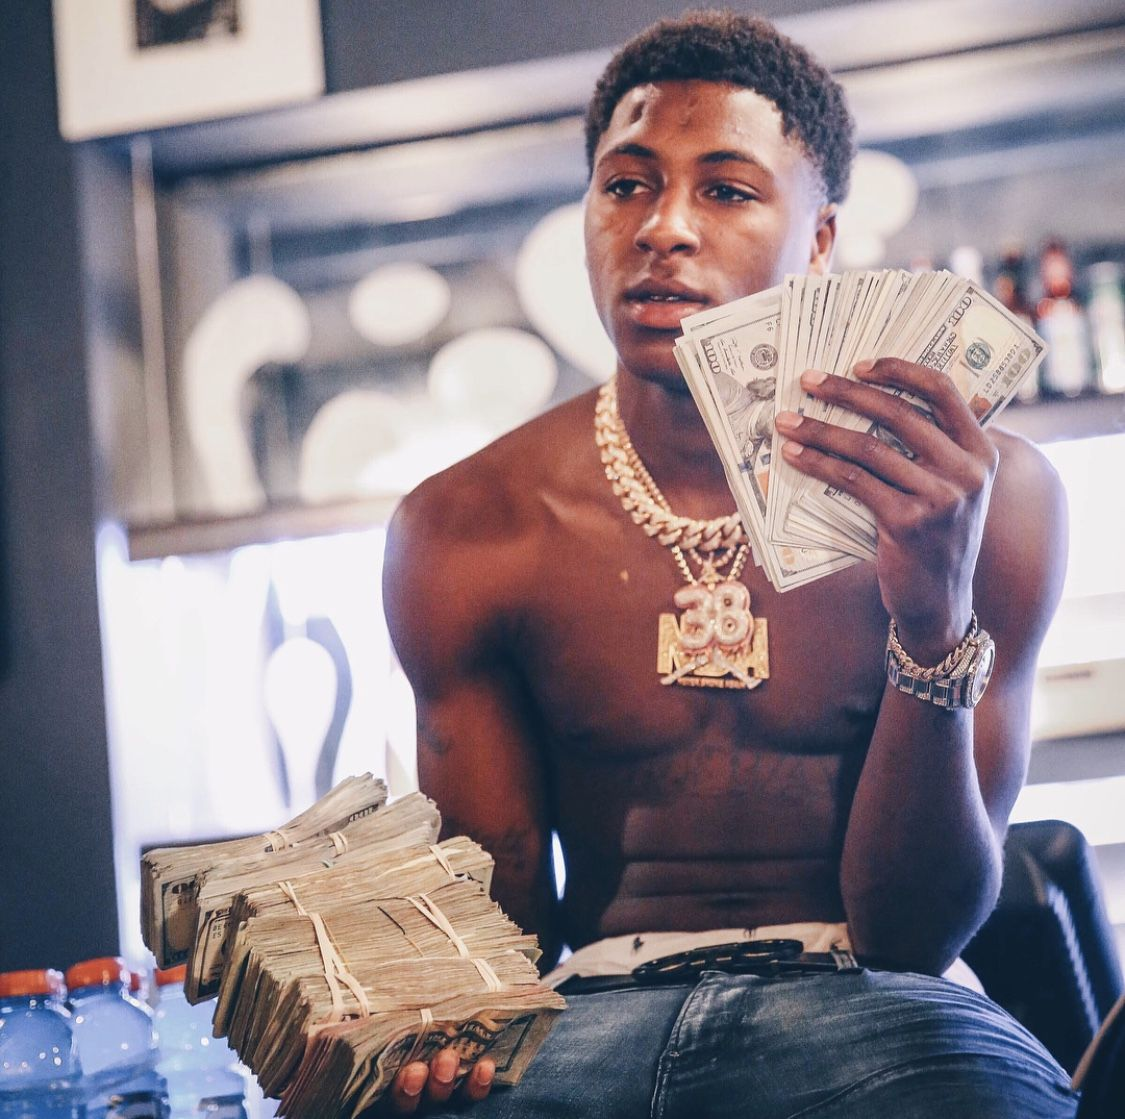 Pin by Cash Szn on Nba Youngboy Nba baby, Cute